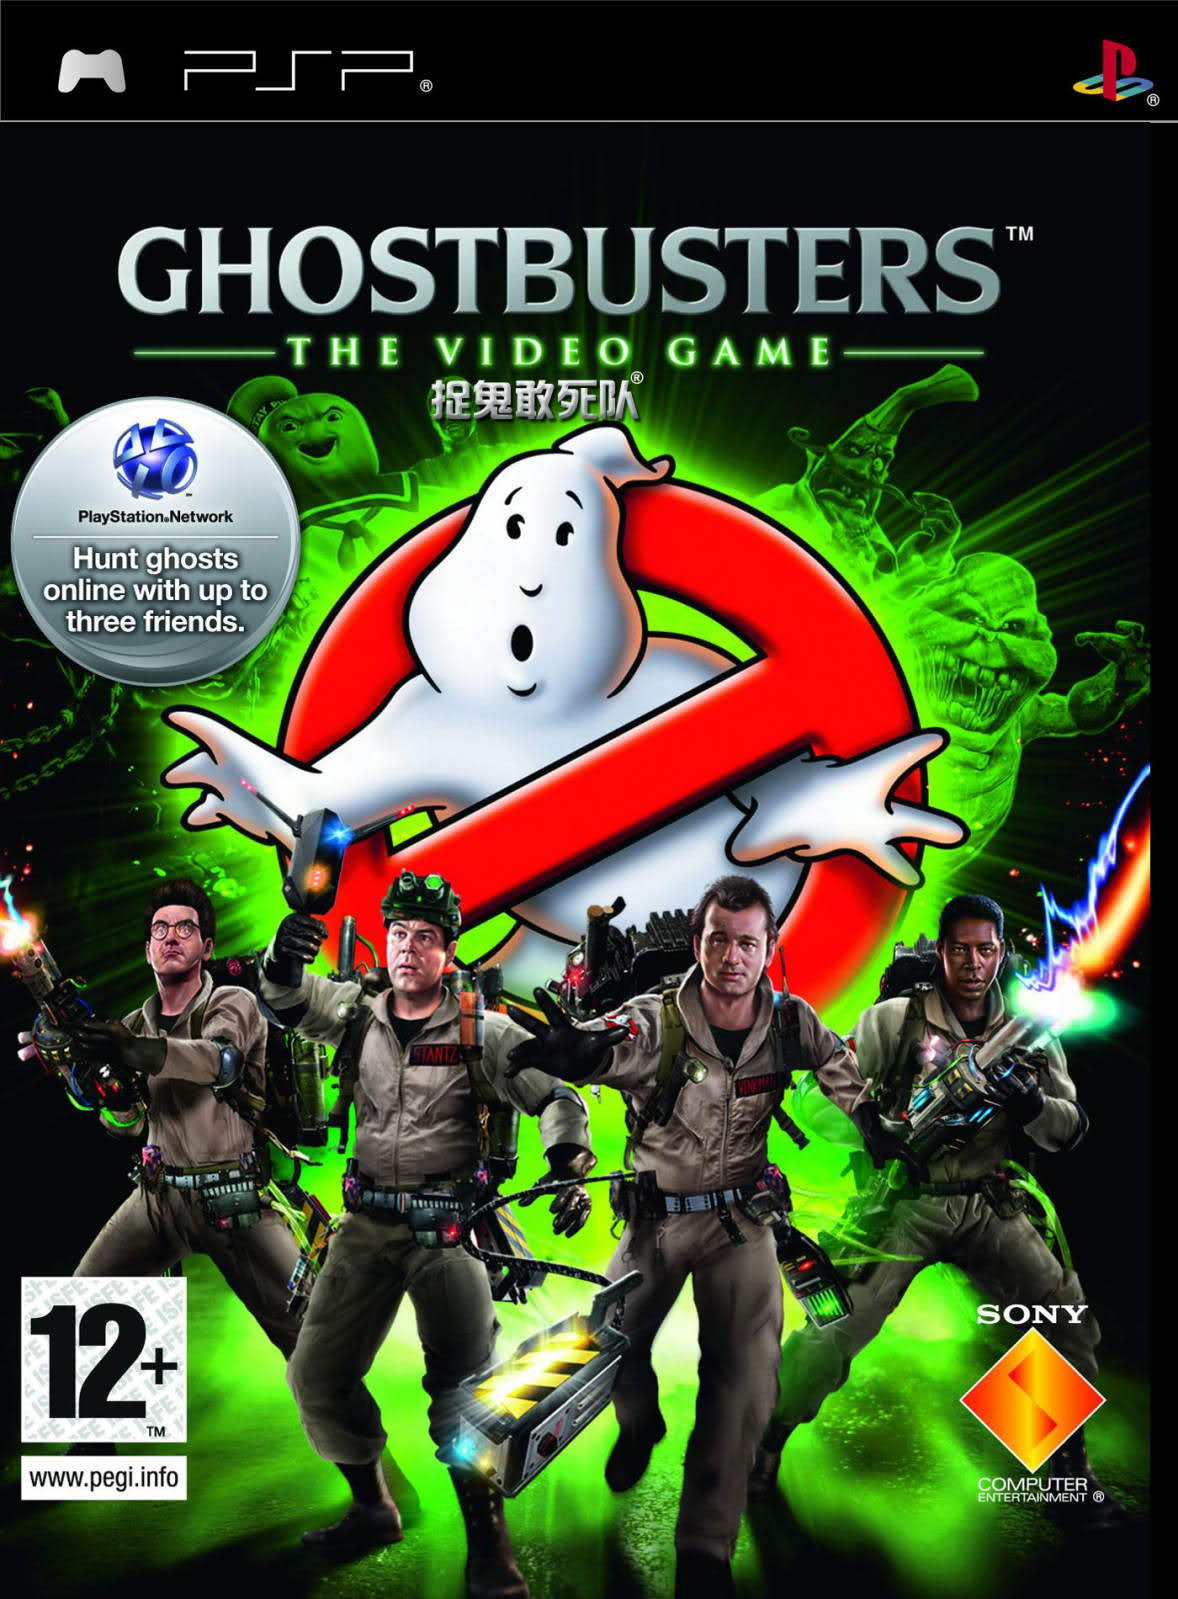 Free Ghostbusters Games Online